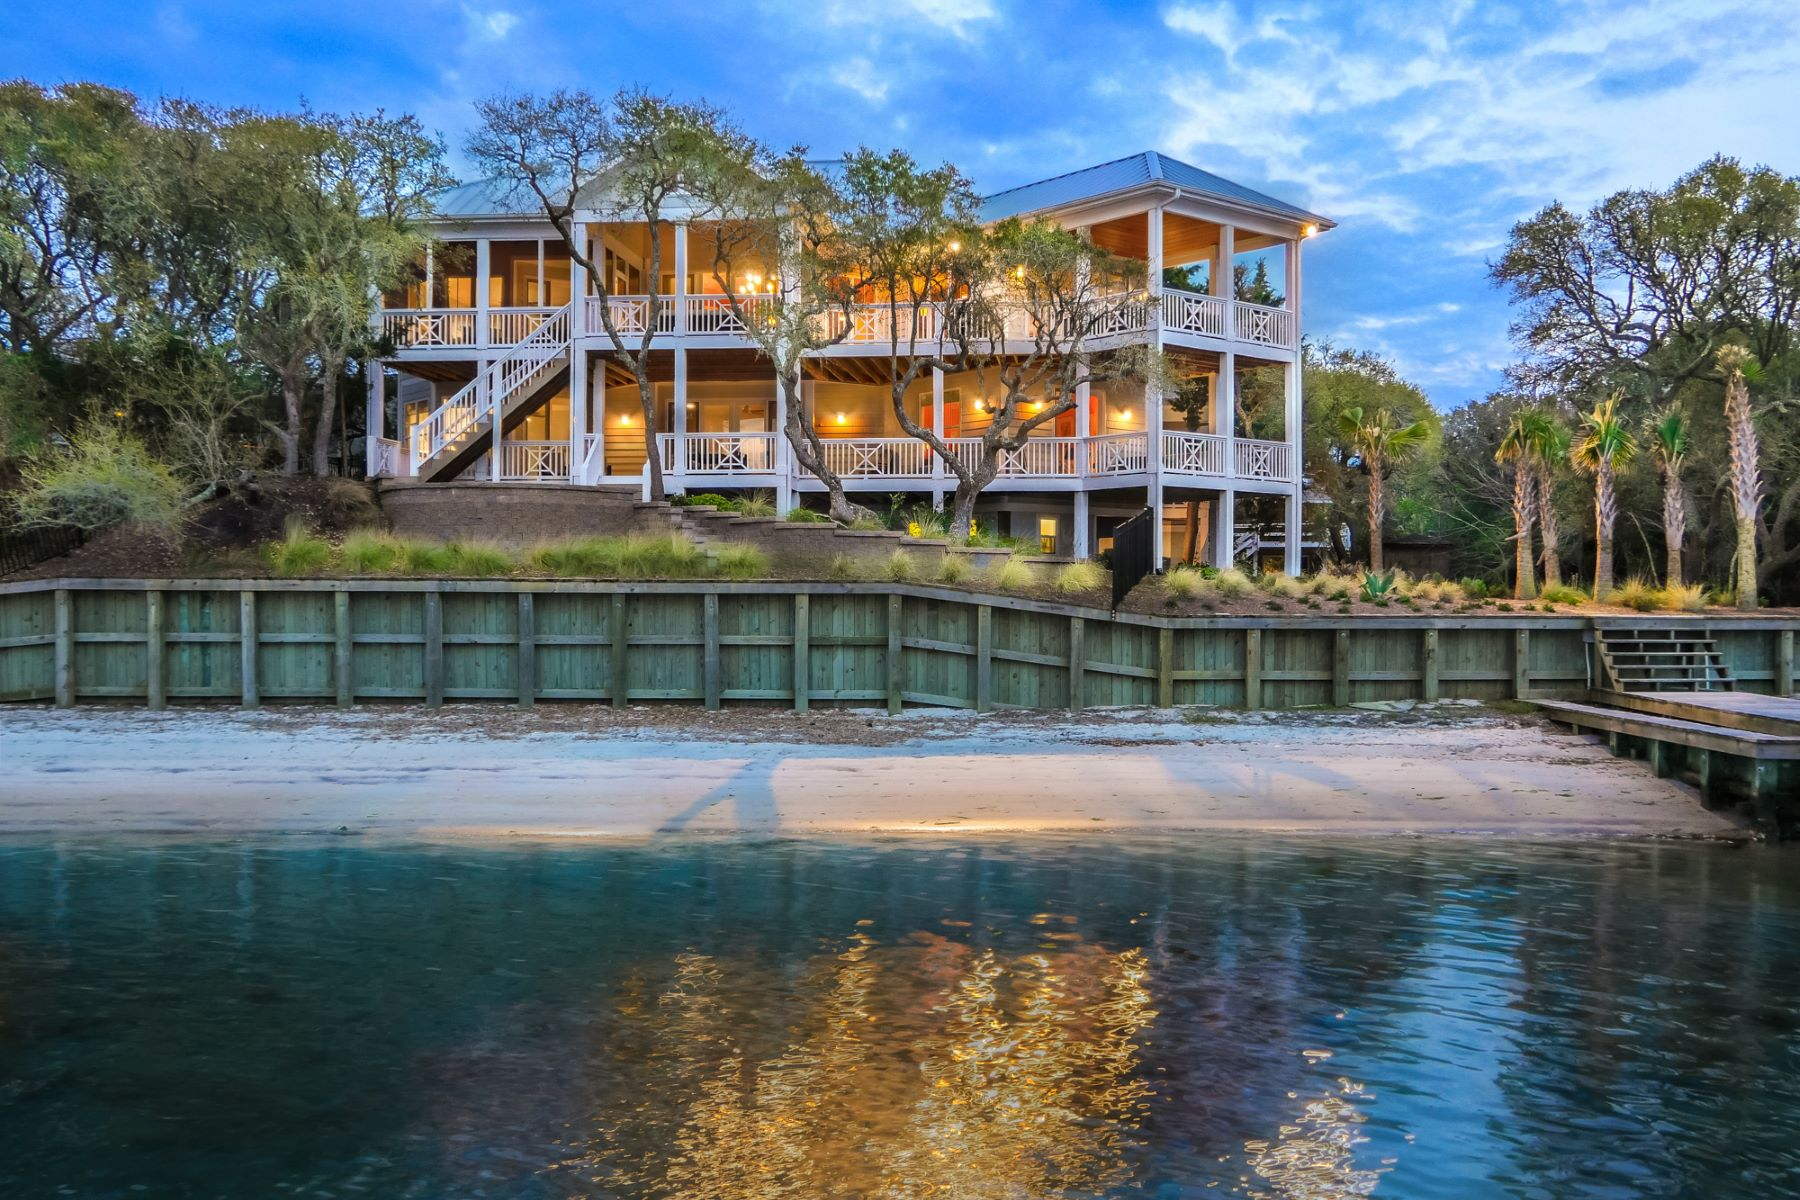 Single Family Home for Sale at Intriguing Island Estate 230 N Anderson Blvd Topsail Beach, North Carolina 28445 United States